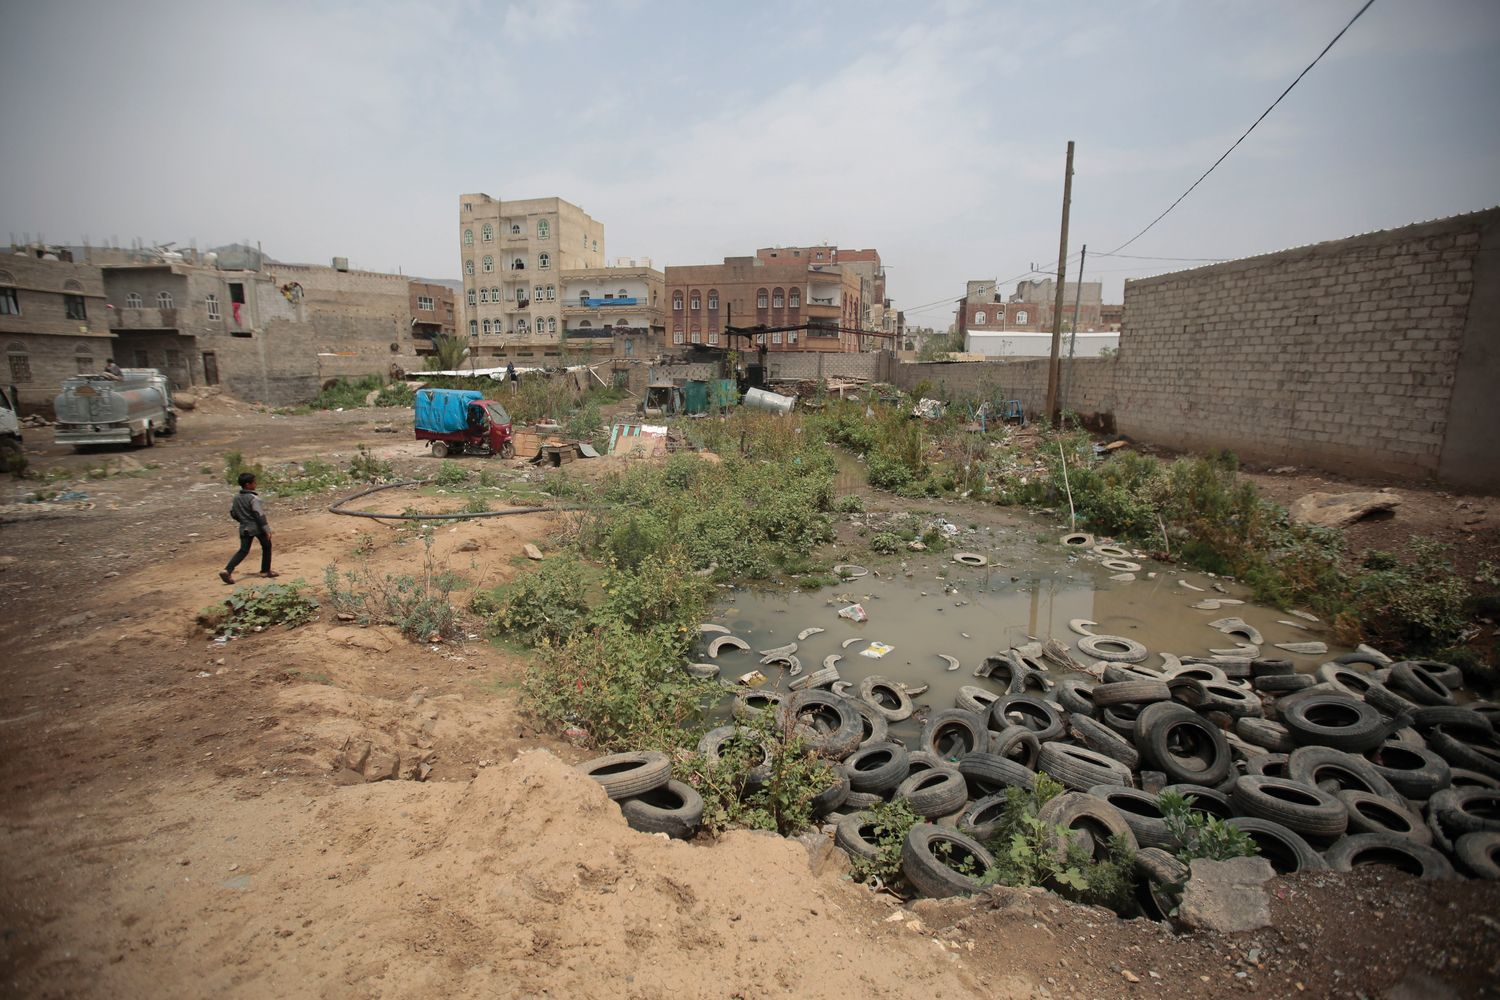 A boy walks beside a sewage swamp in Yemen.